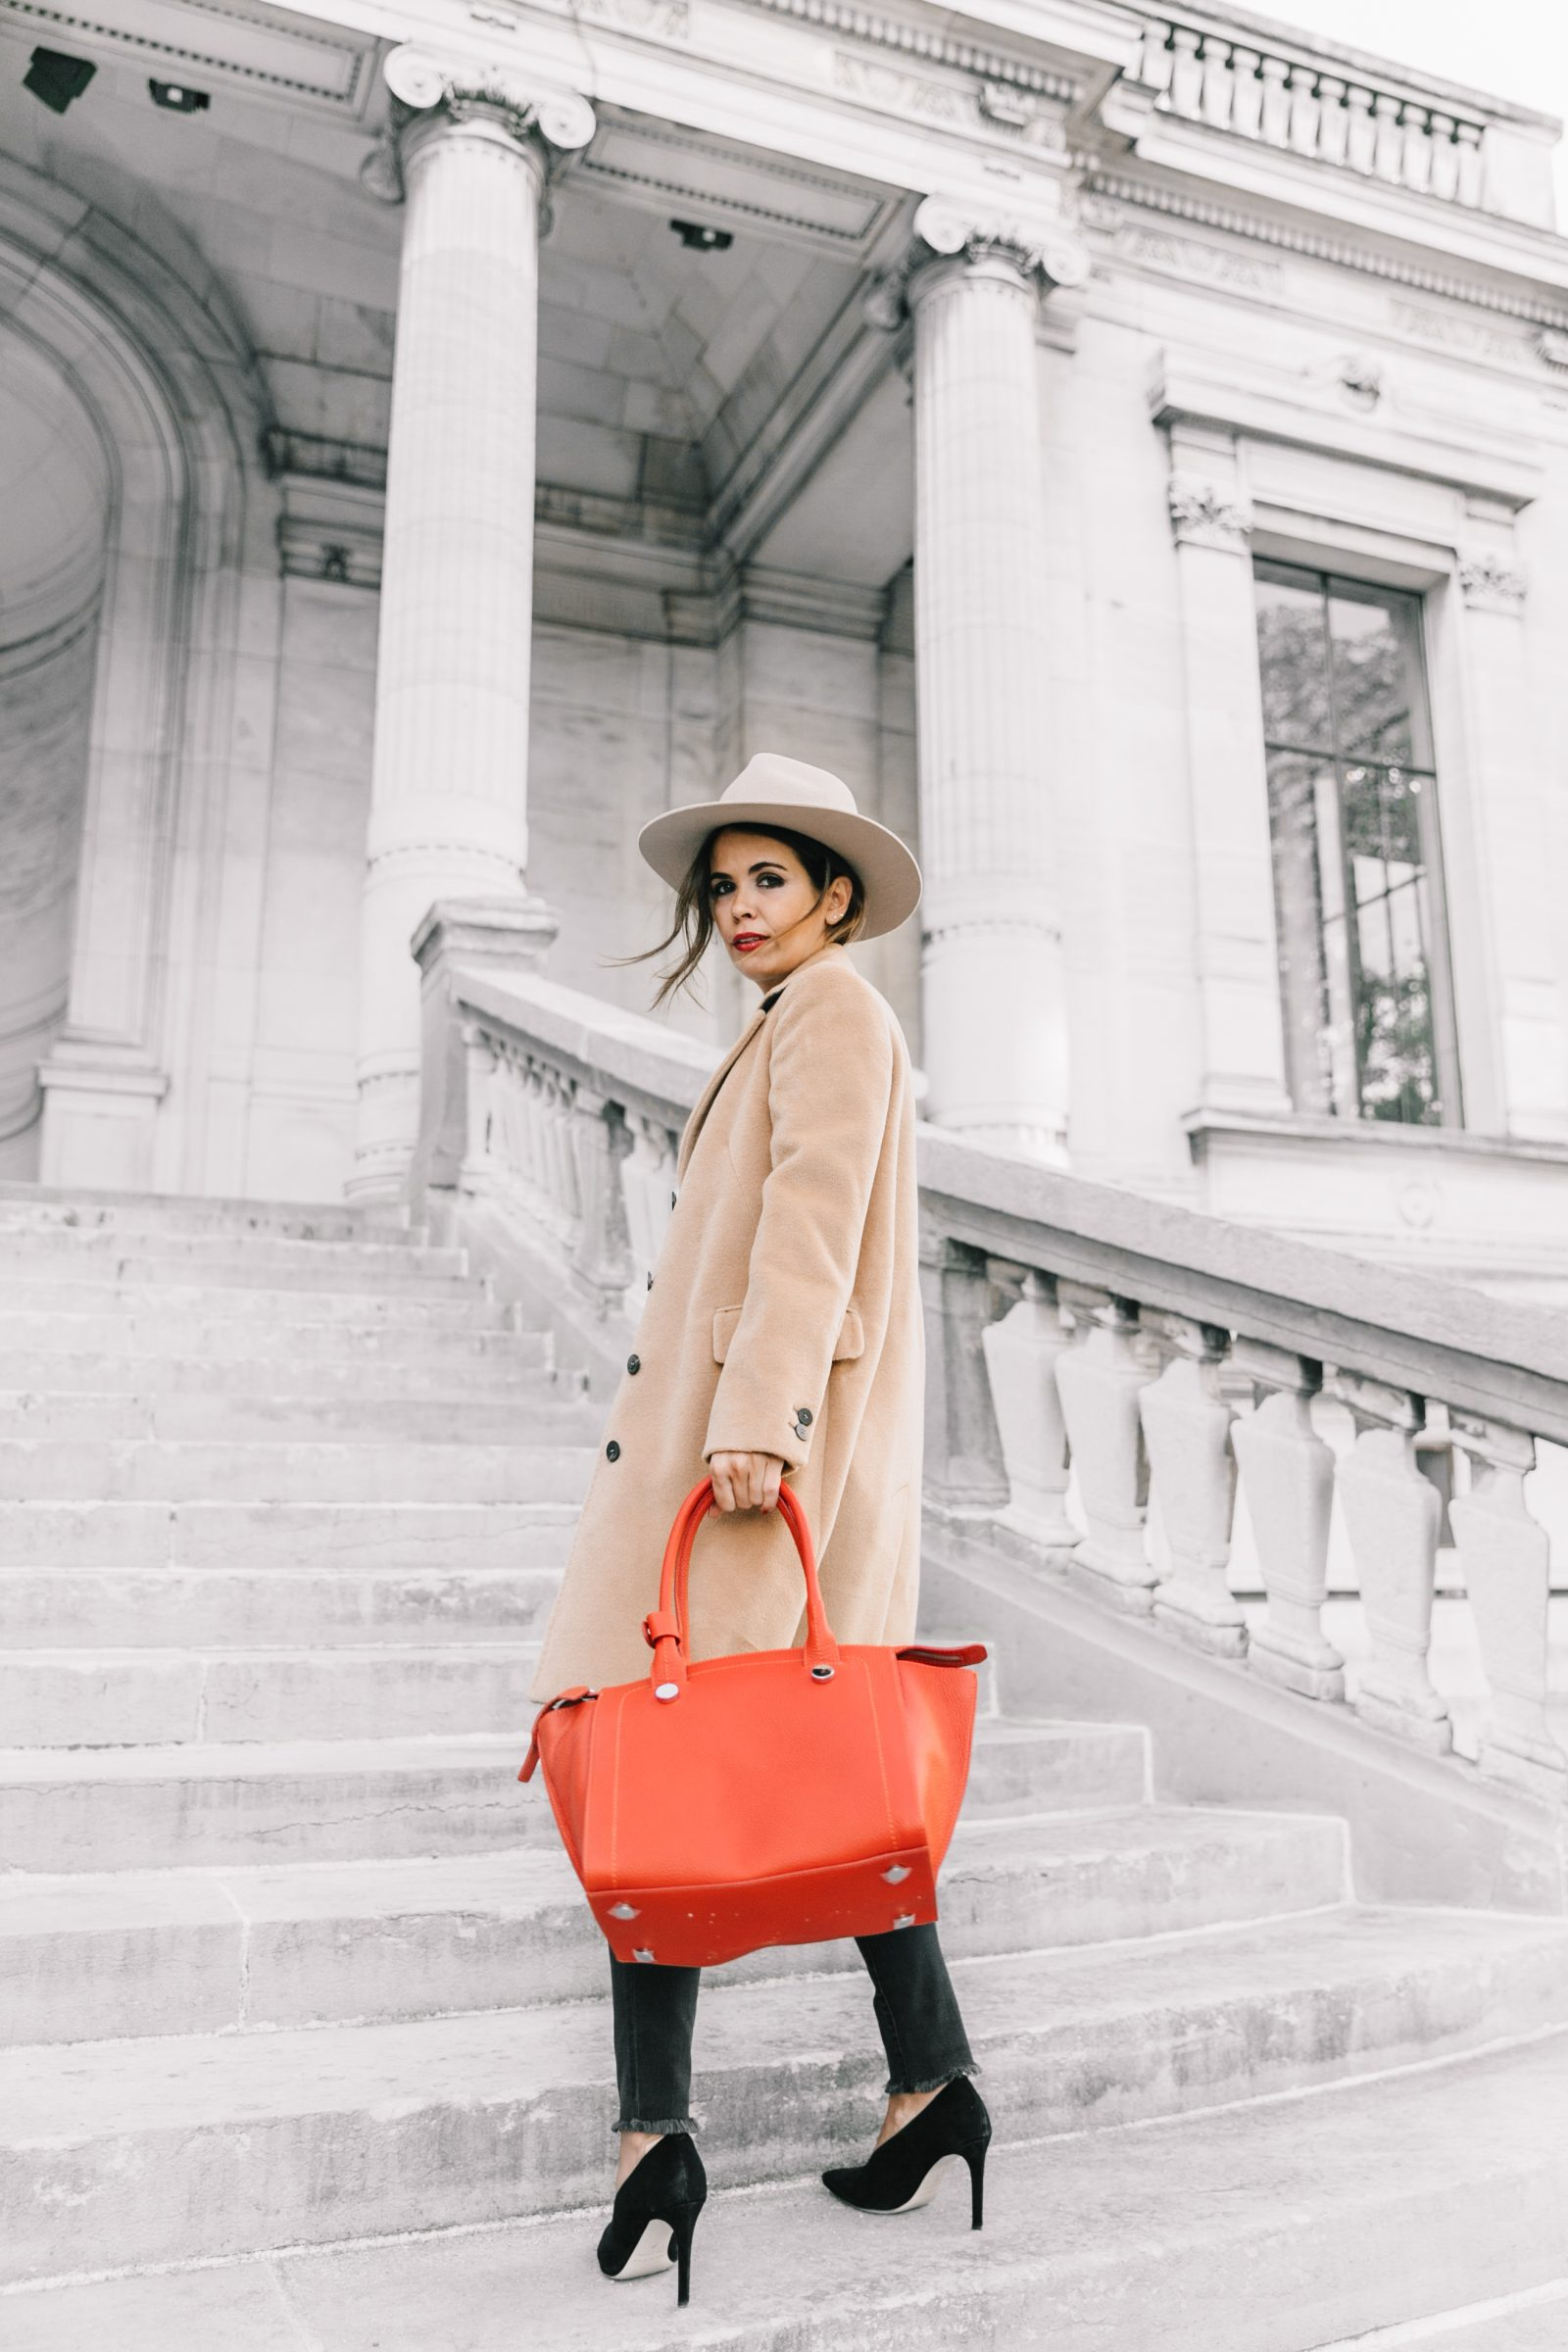 pfw-paris_fashion_week_ss17-street_style-outfits-collage_vintage-max_and_co-camel_coat-orange_bag-skinny_jeans-sandro_shoes-hat-sincerely_jules_jeans-14